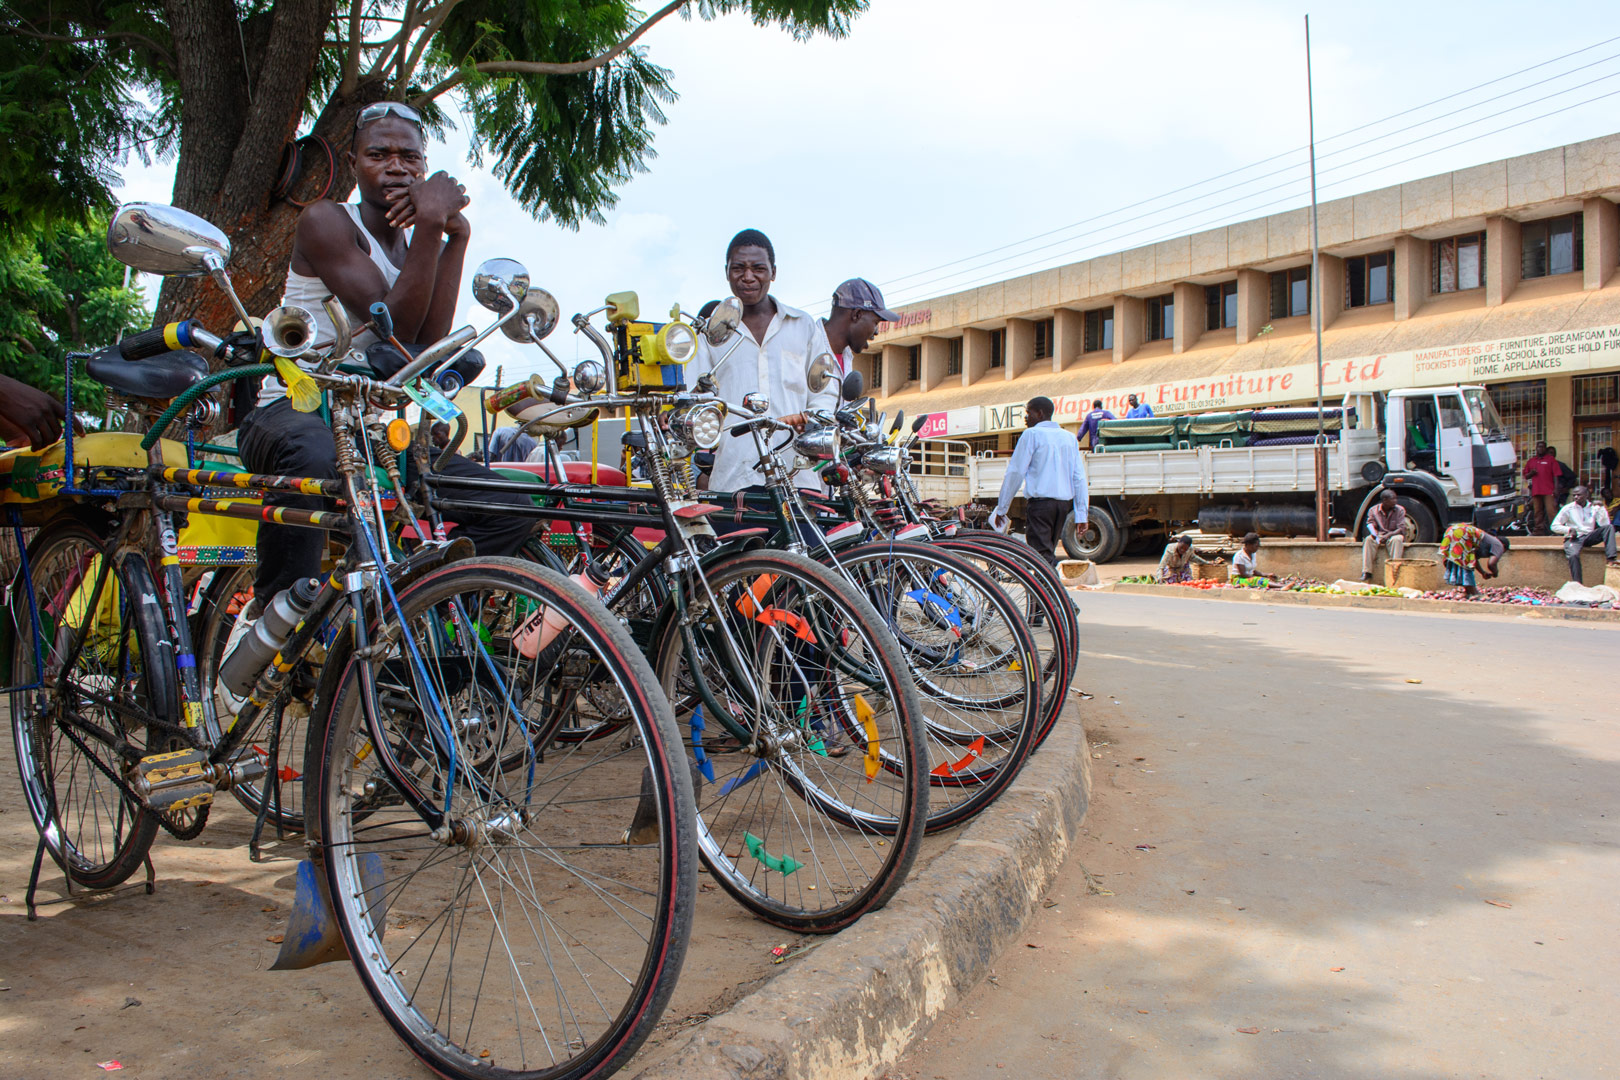 African bicycle chauffeurs wait for customers